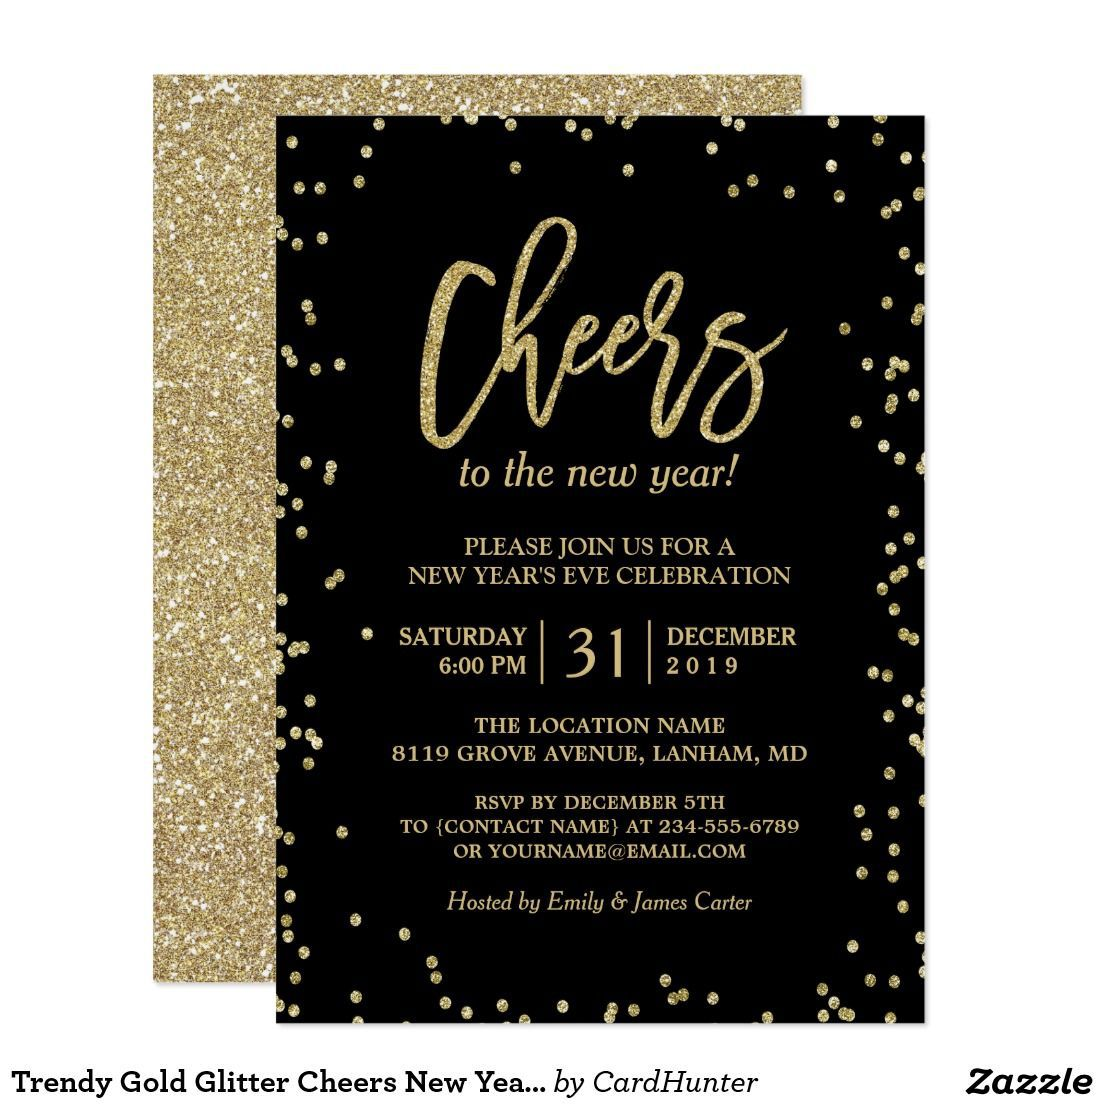 003 Fascinating New Year Eve Invitation Template High Definition  Party Free WordFull